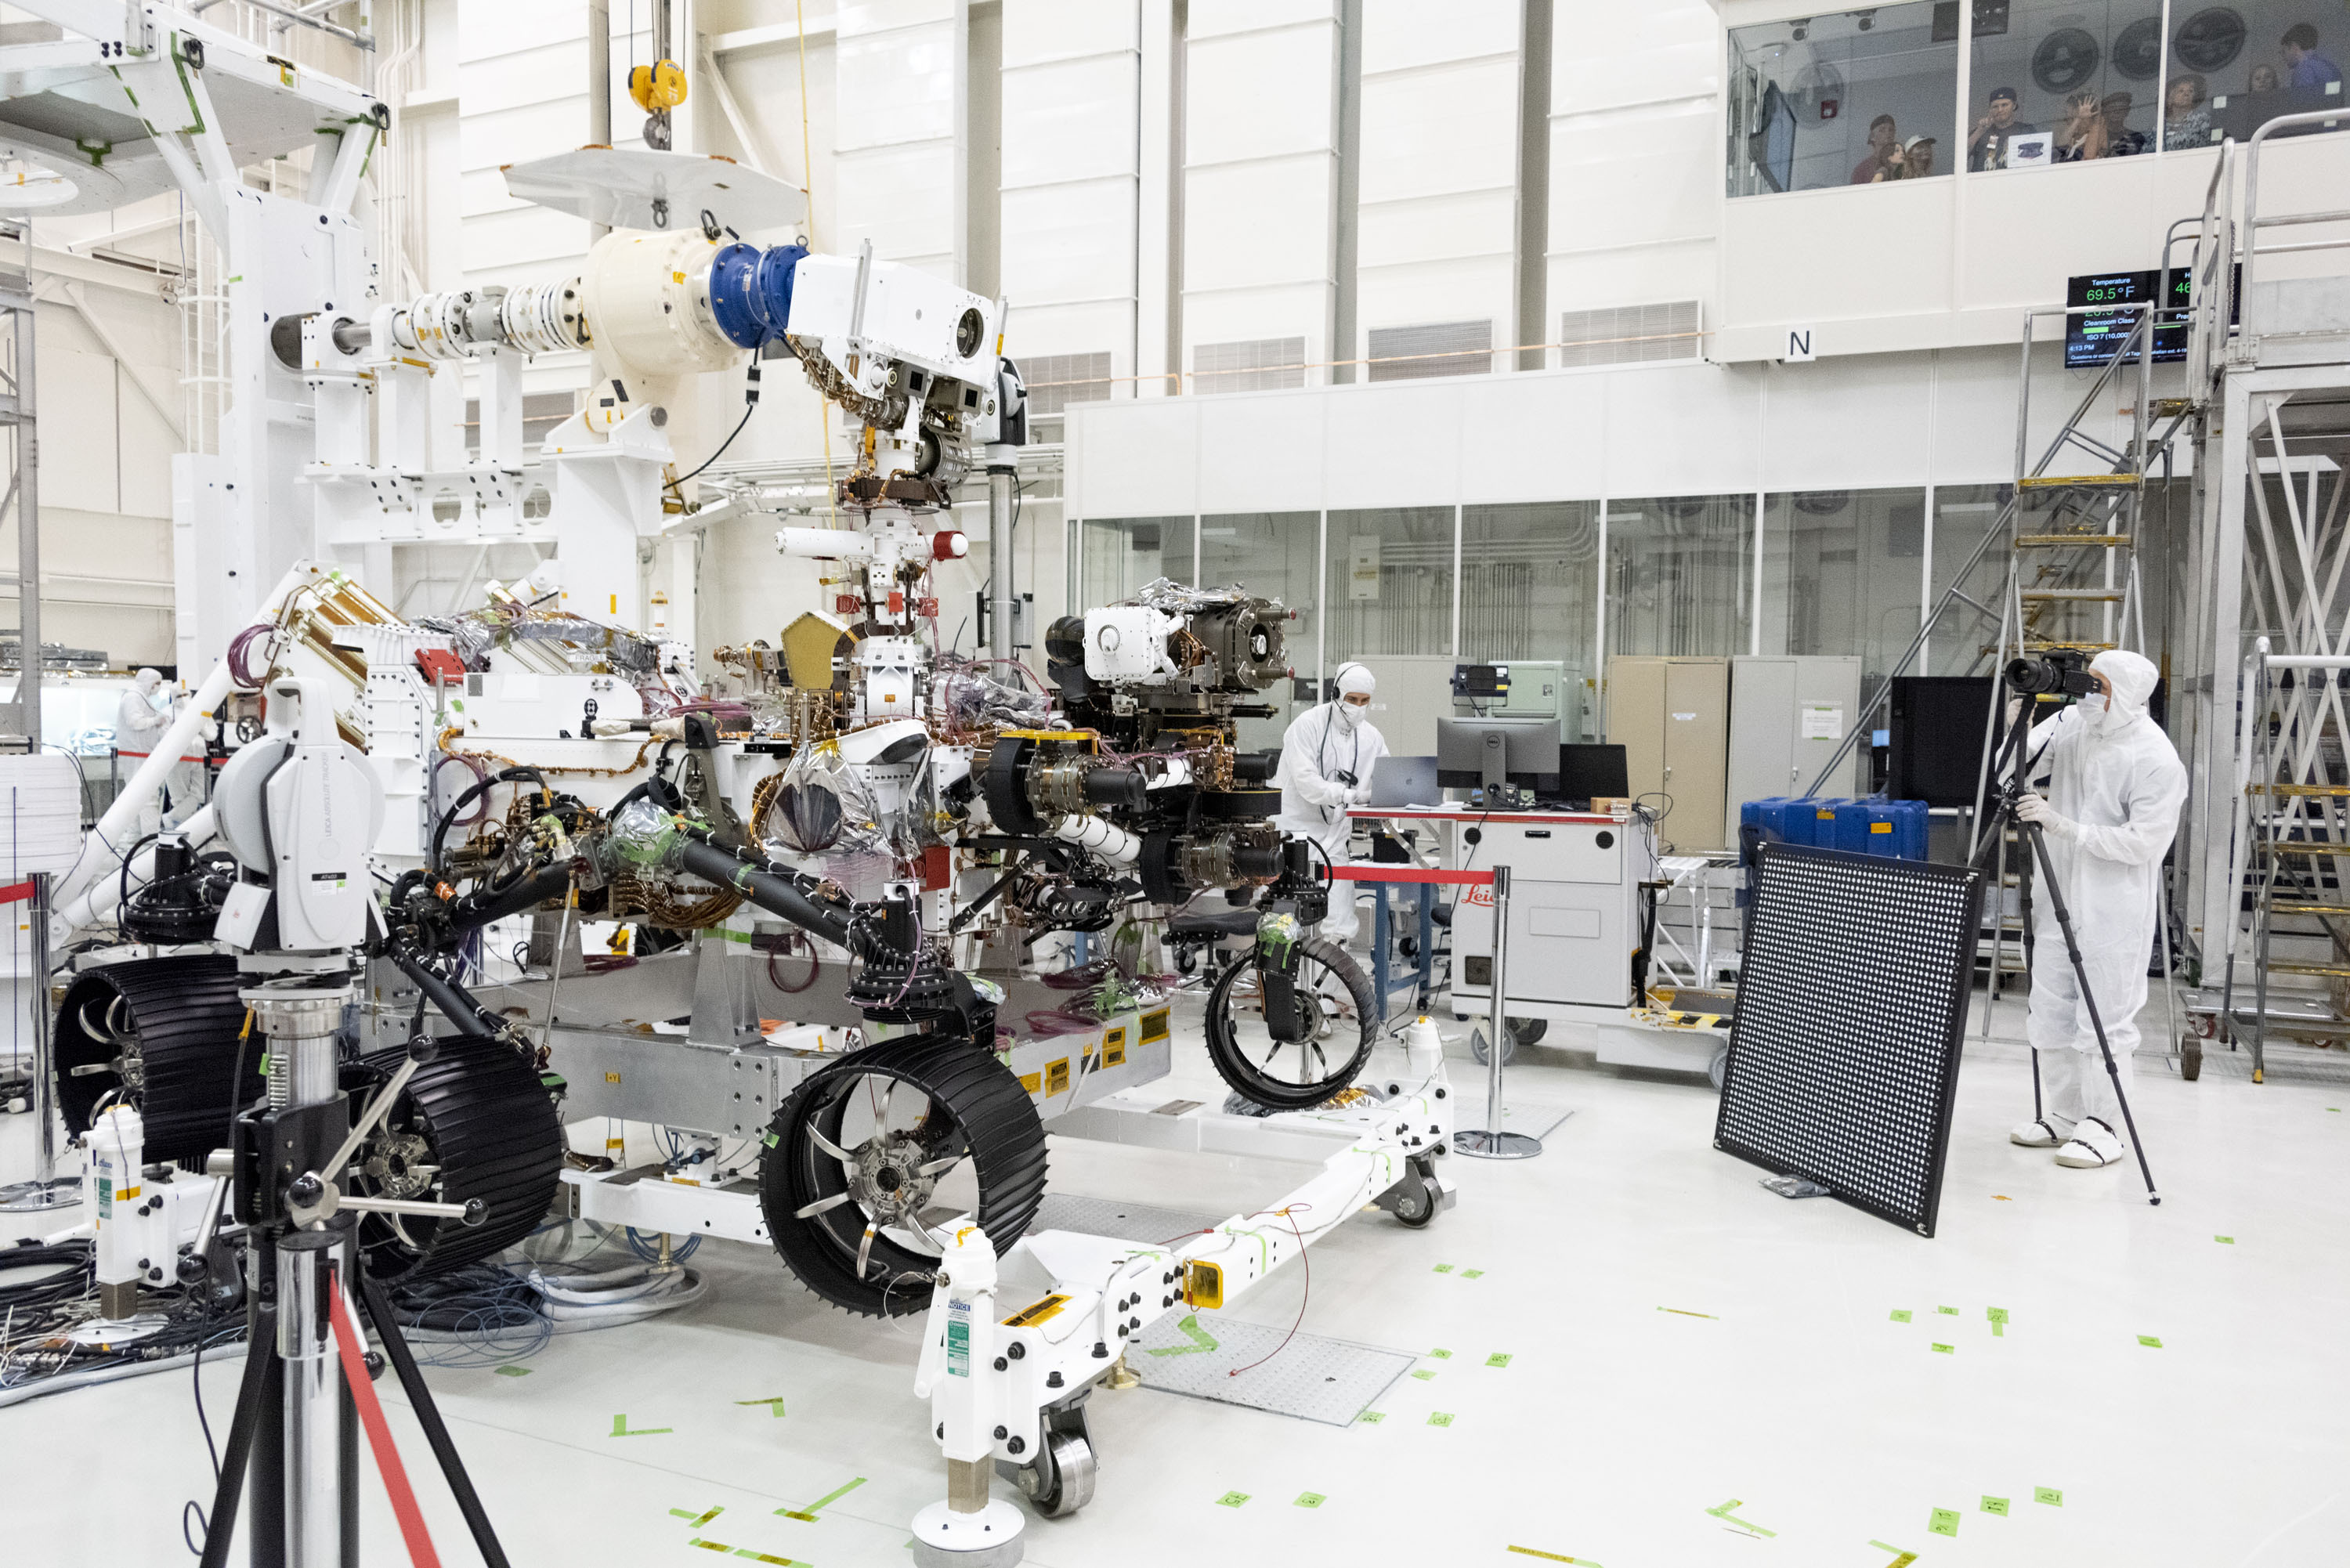 Mars 2020 Rover almost Assembled